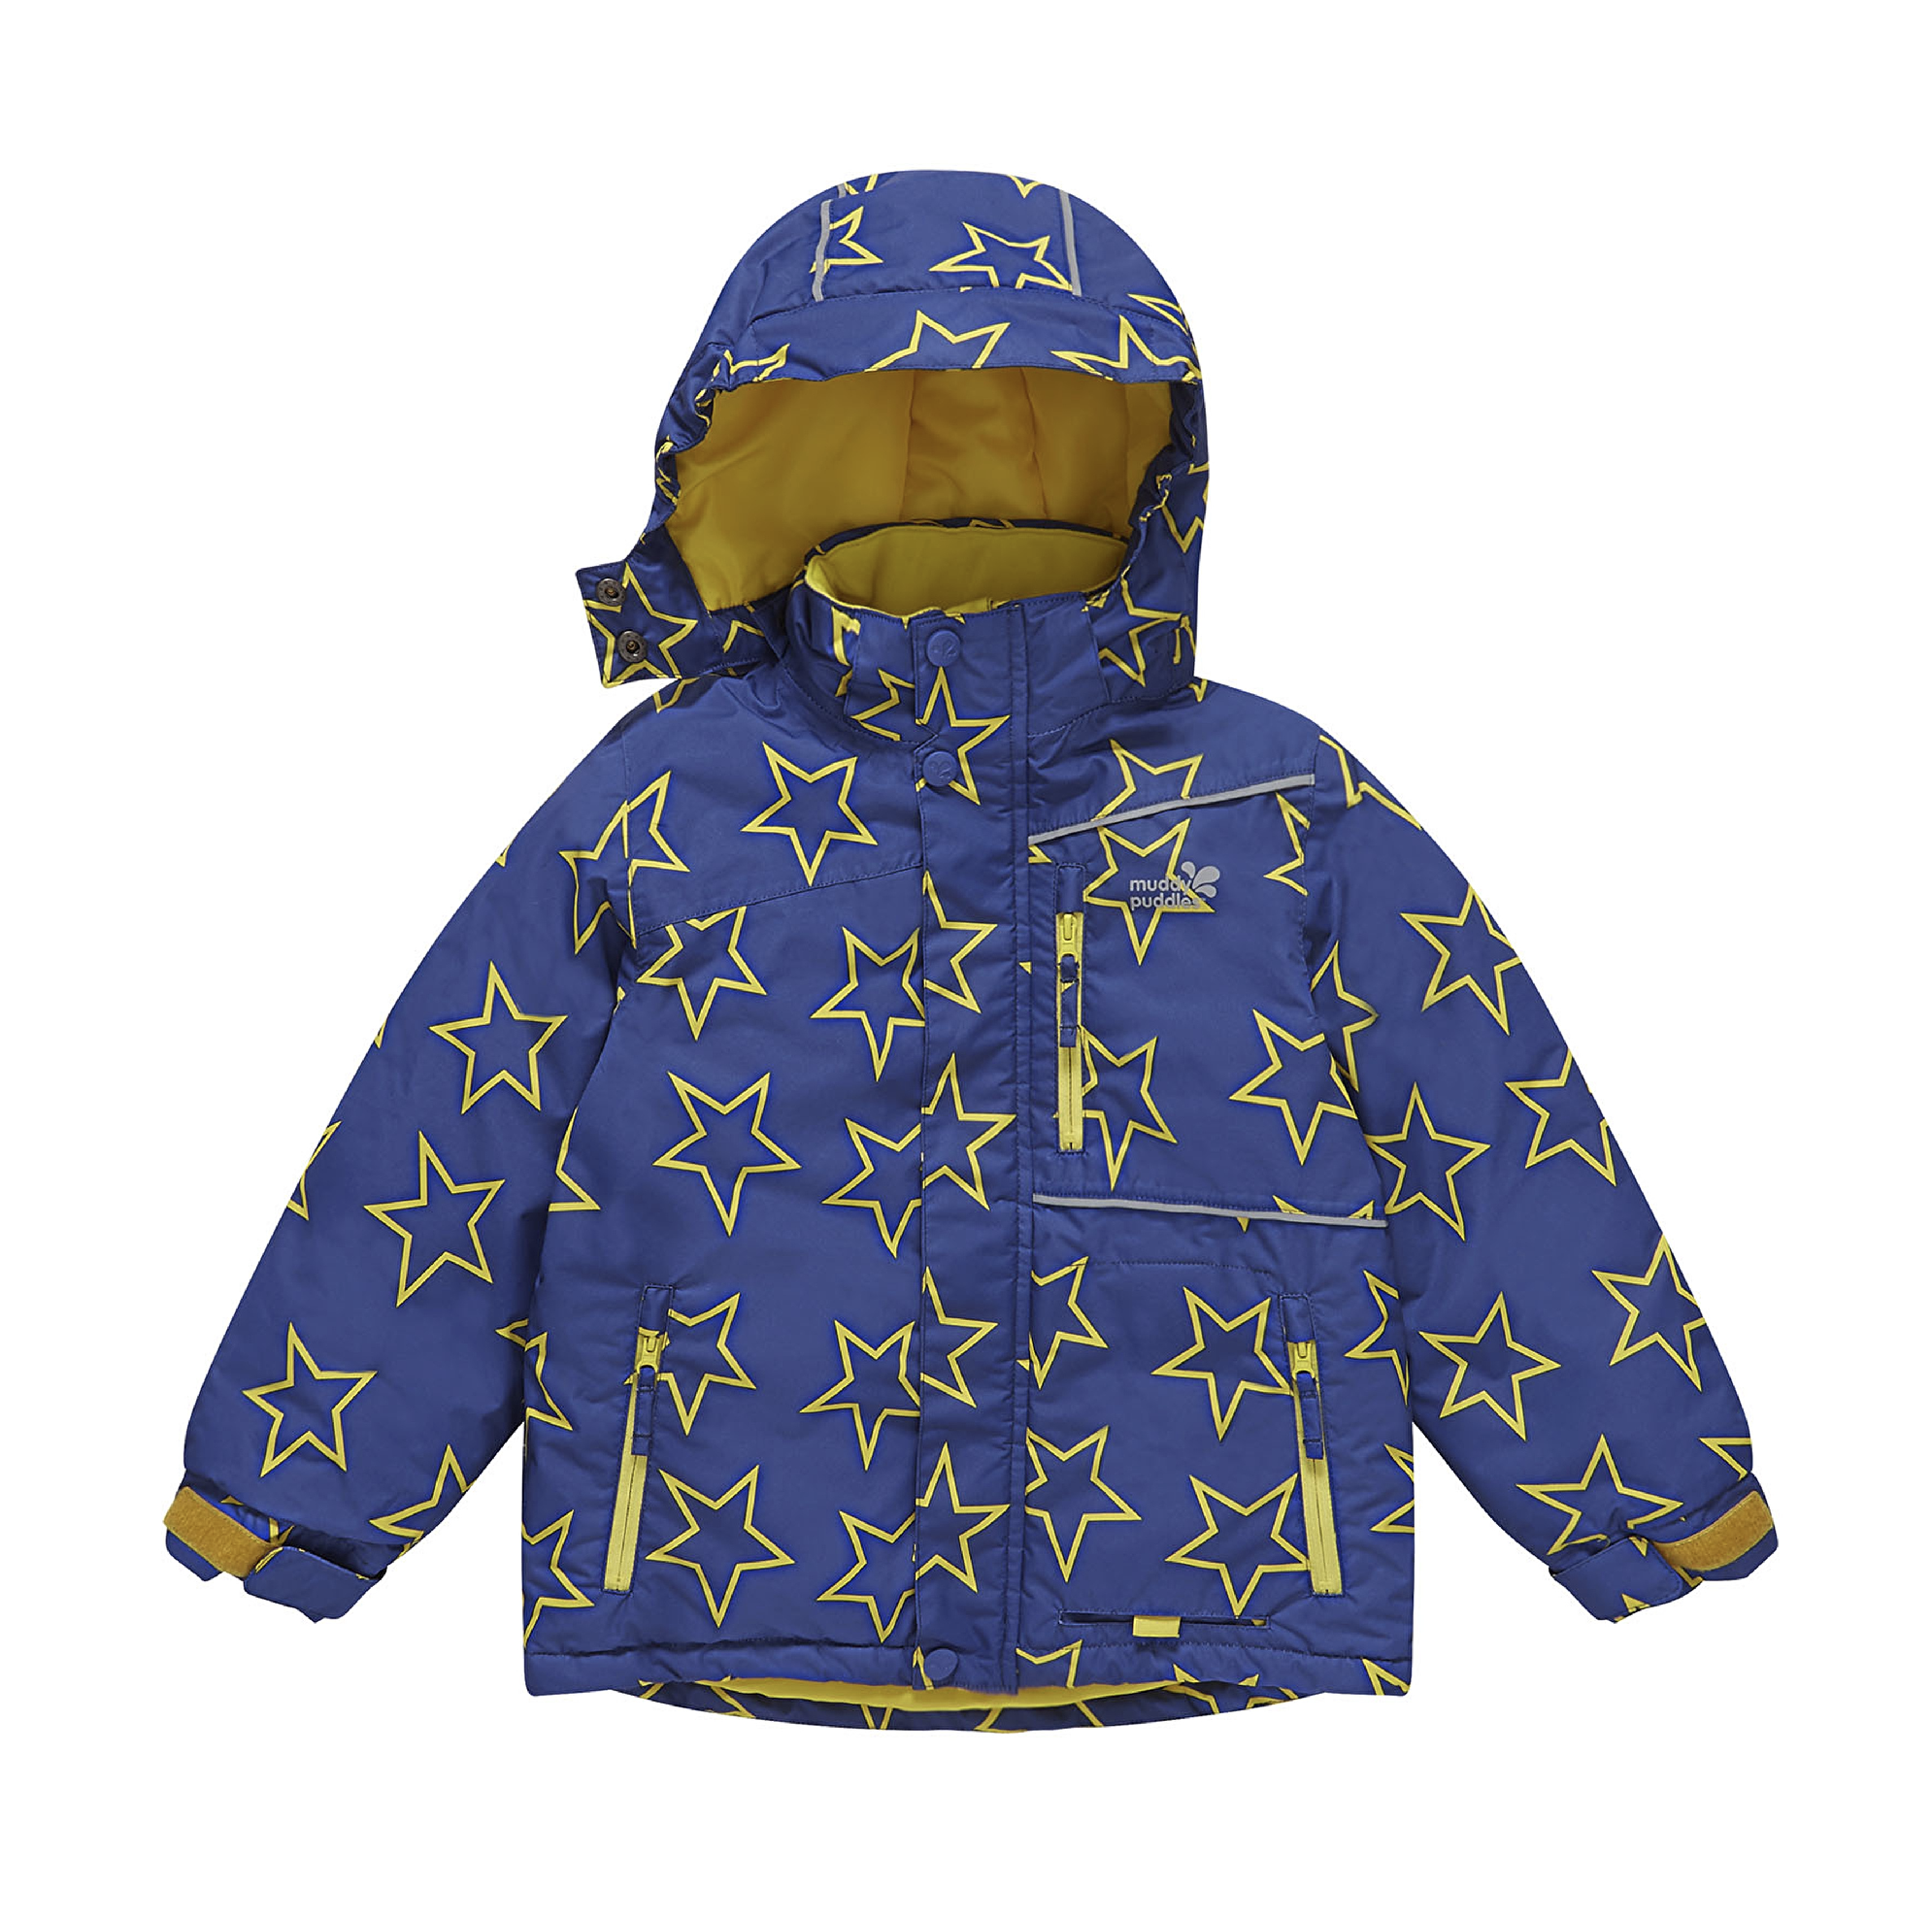 Snowstorm Waterproof Jacket